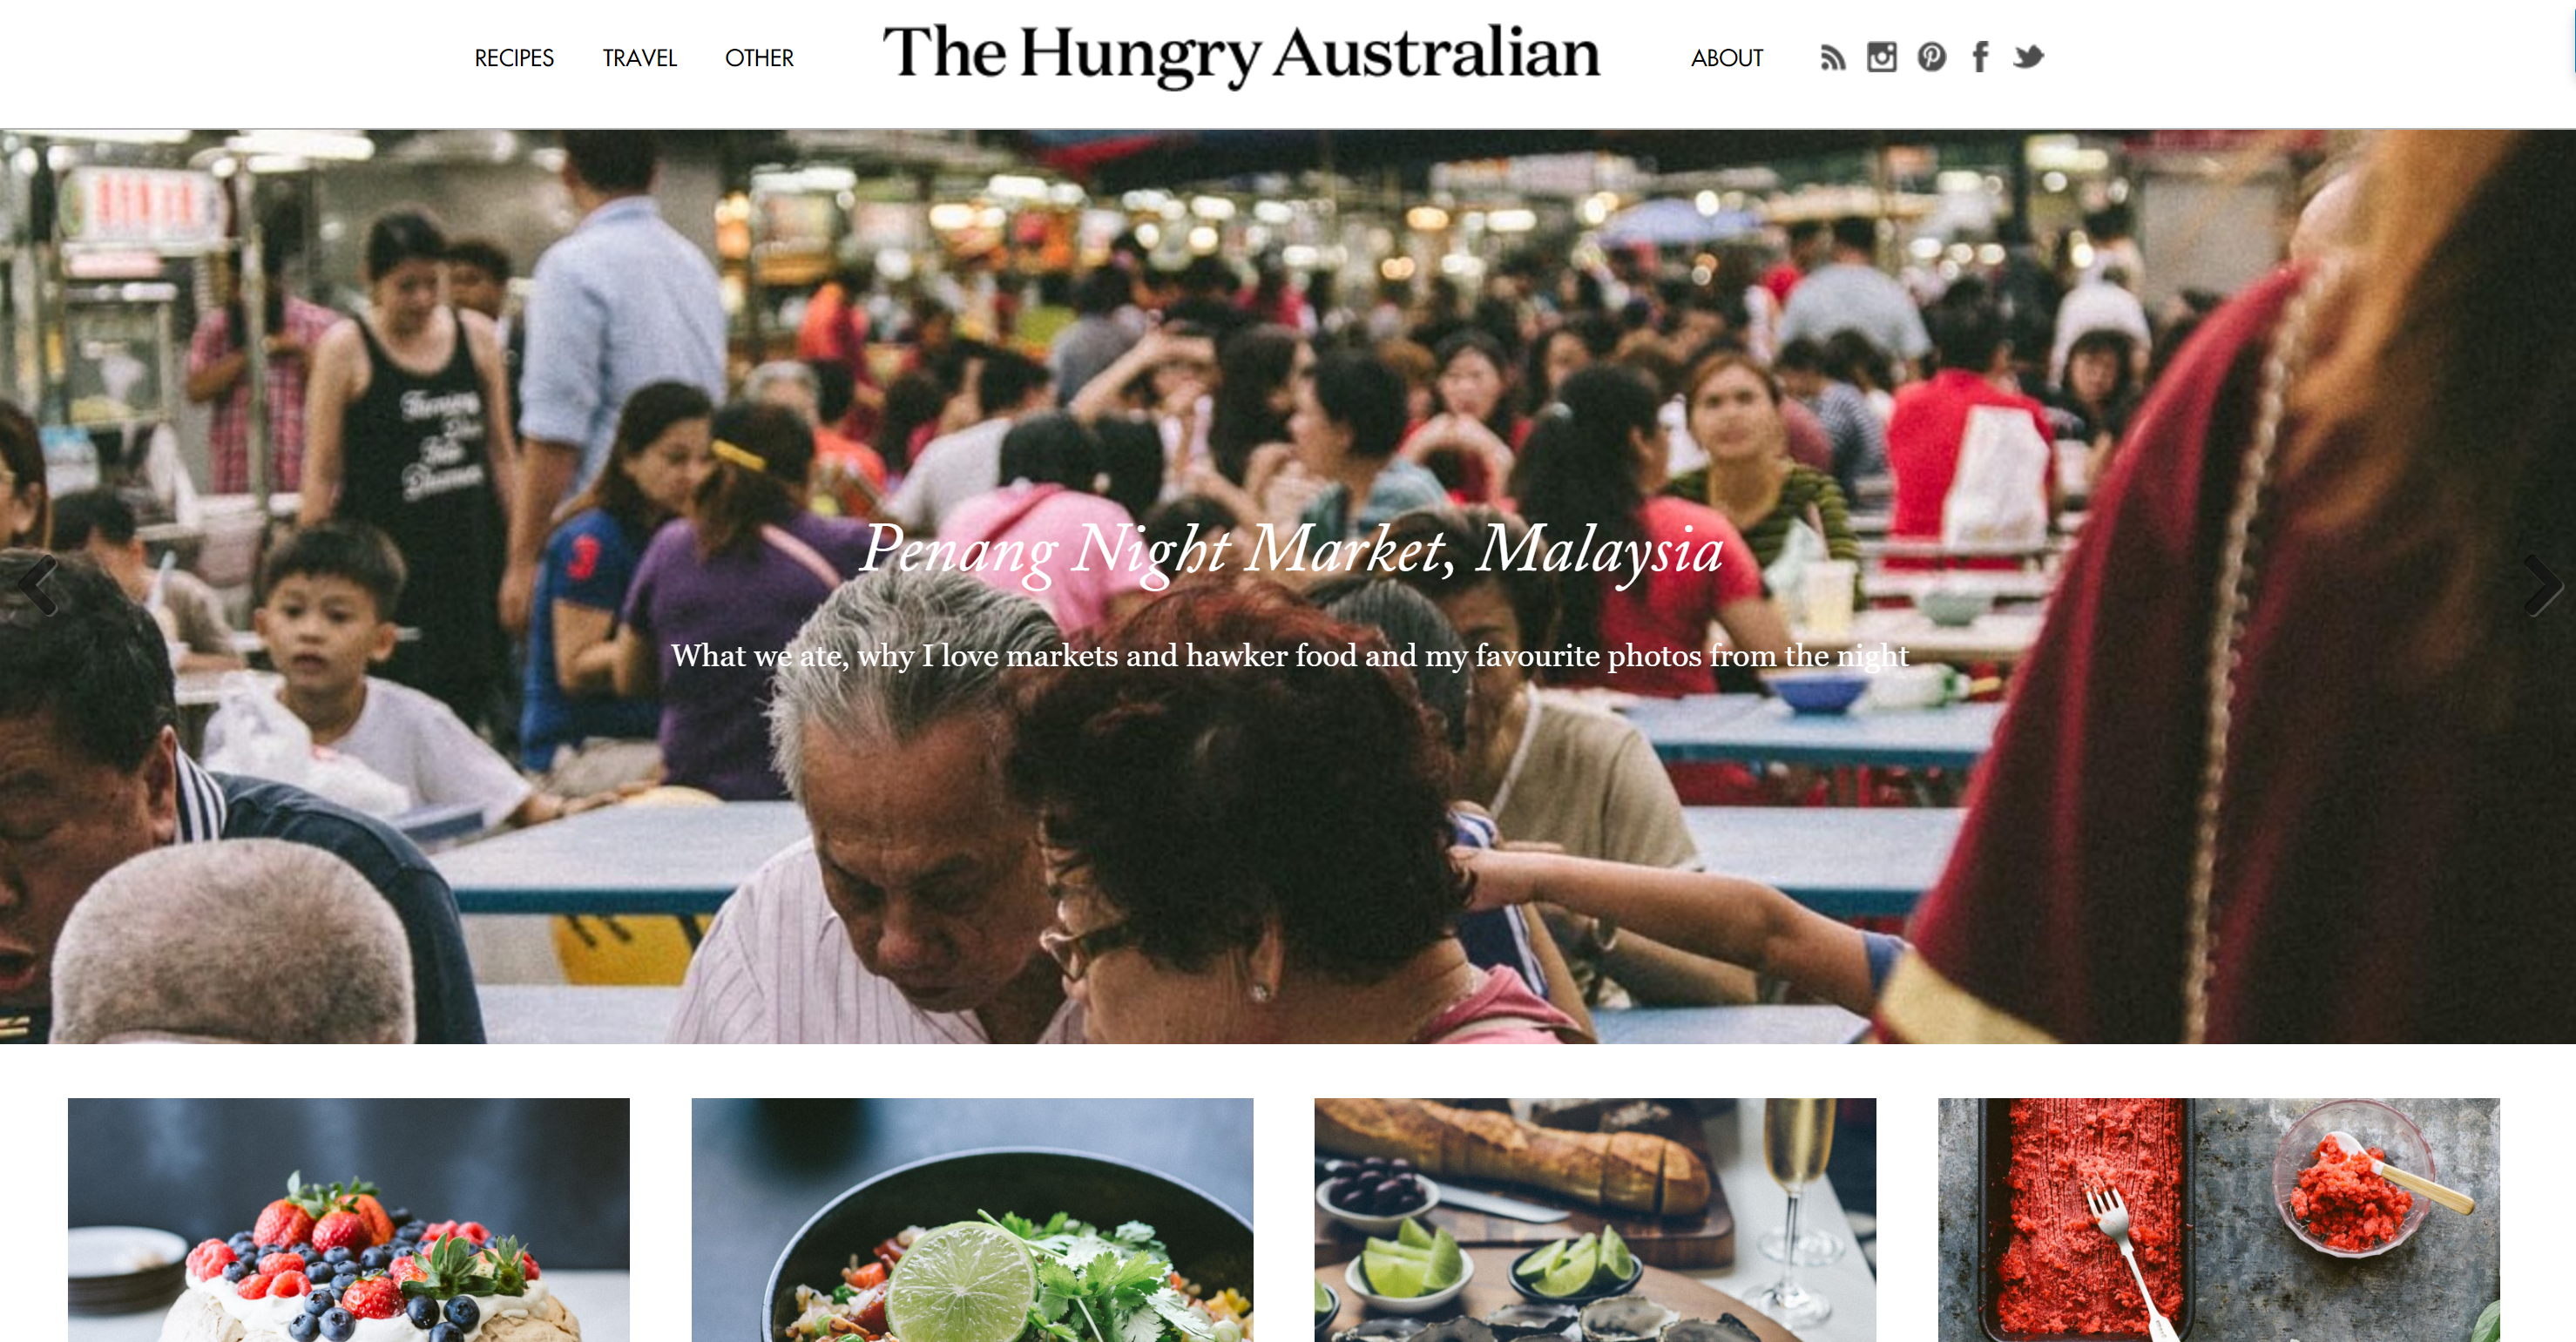 The Hungry Australian logo